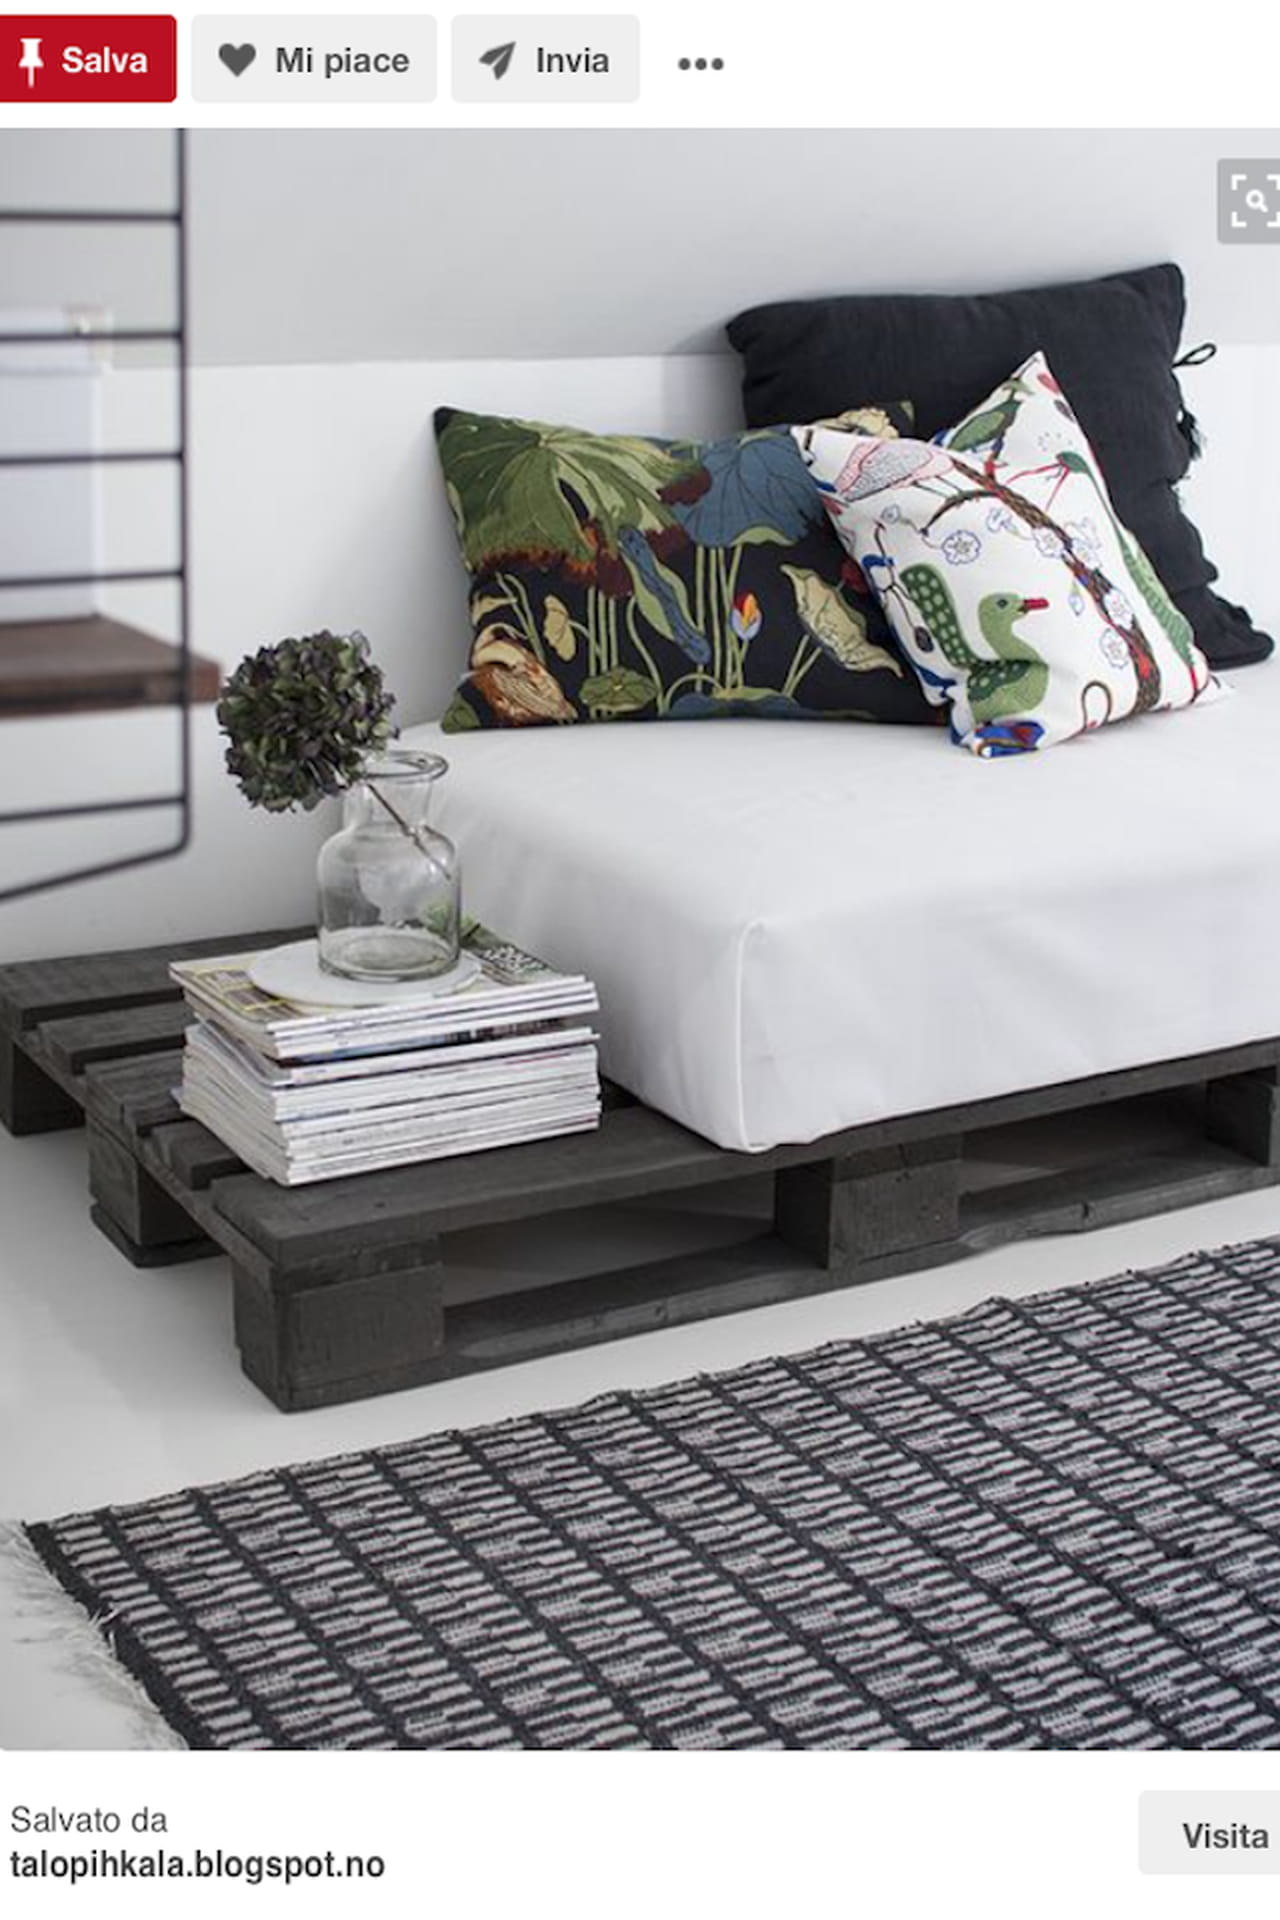 Awesome divano con pallet design anche minimal chic with for Arredare coi bancali